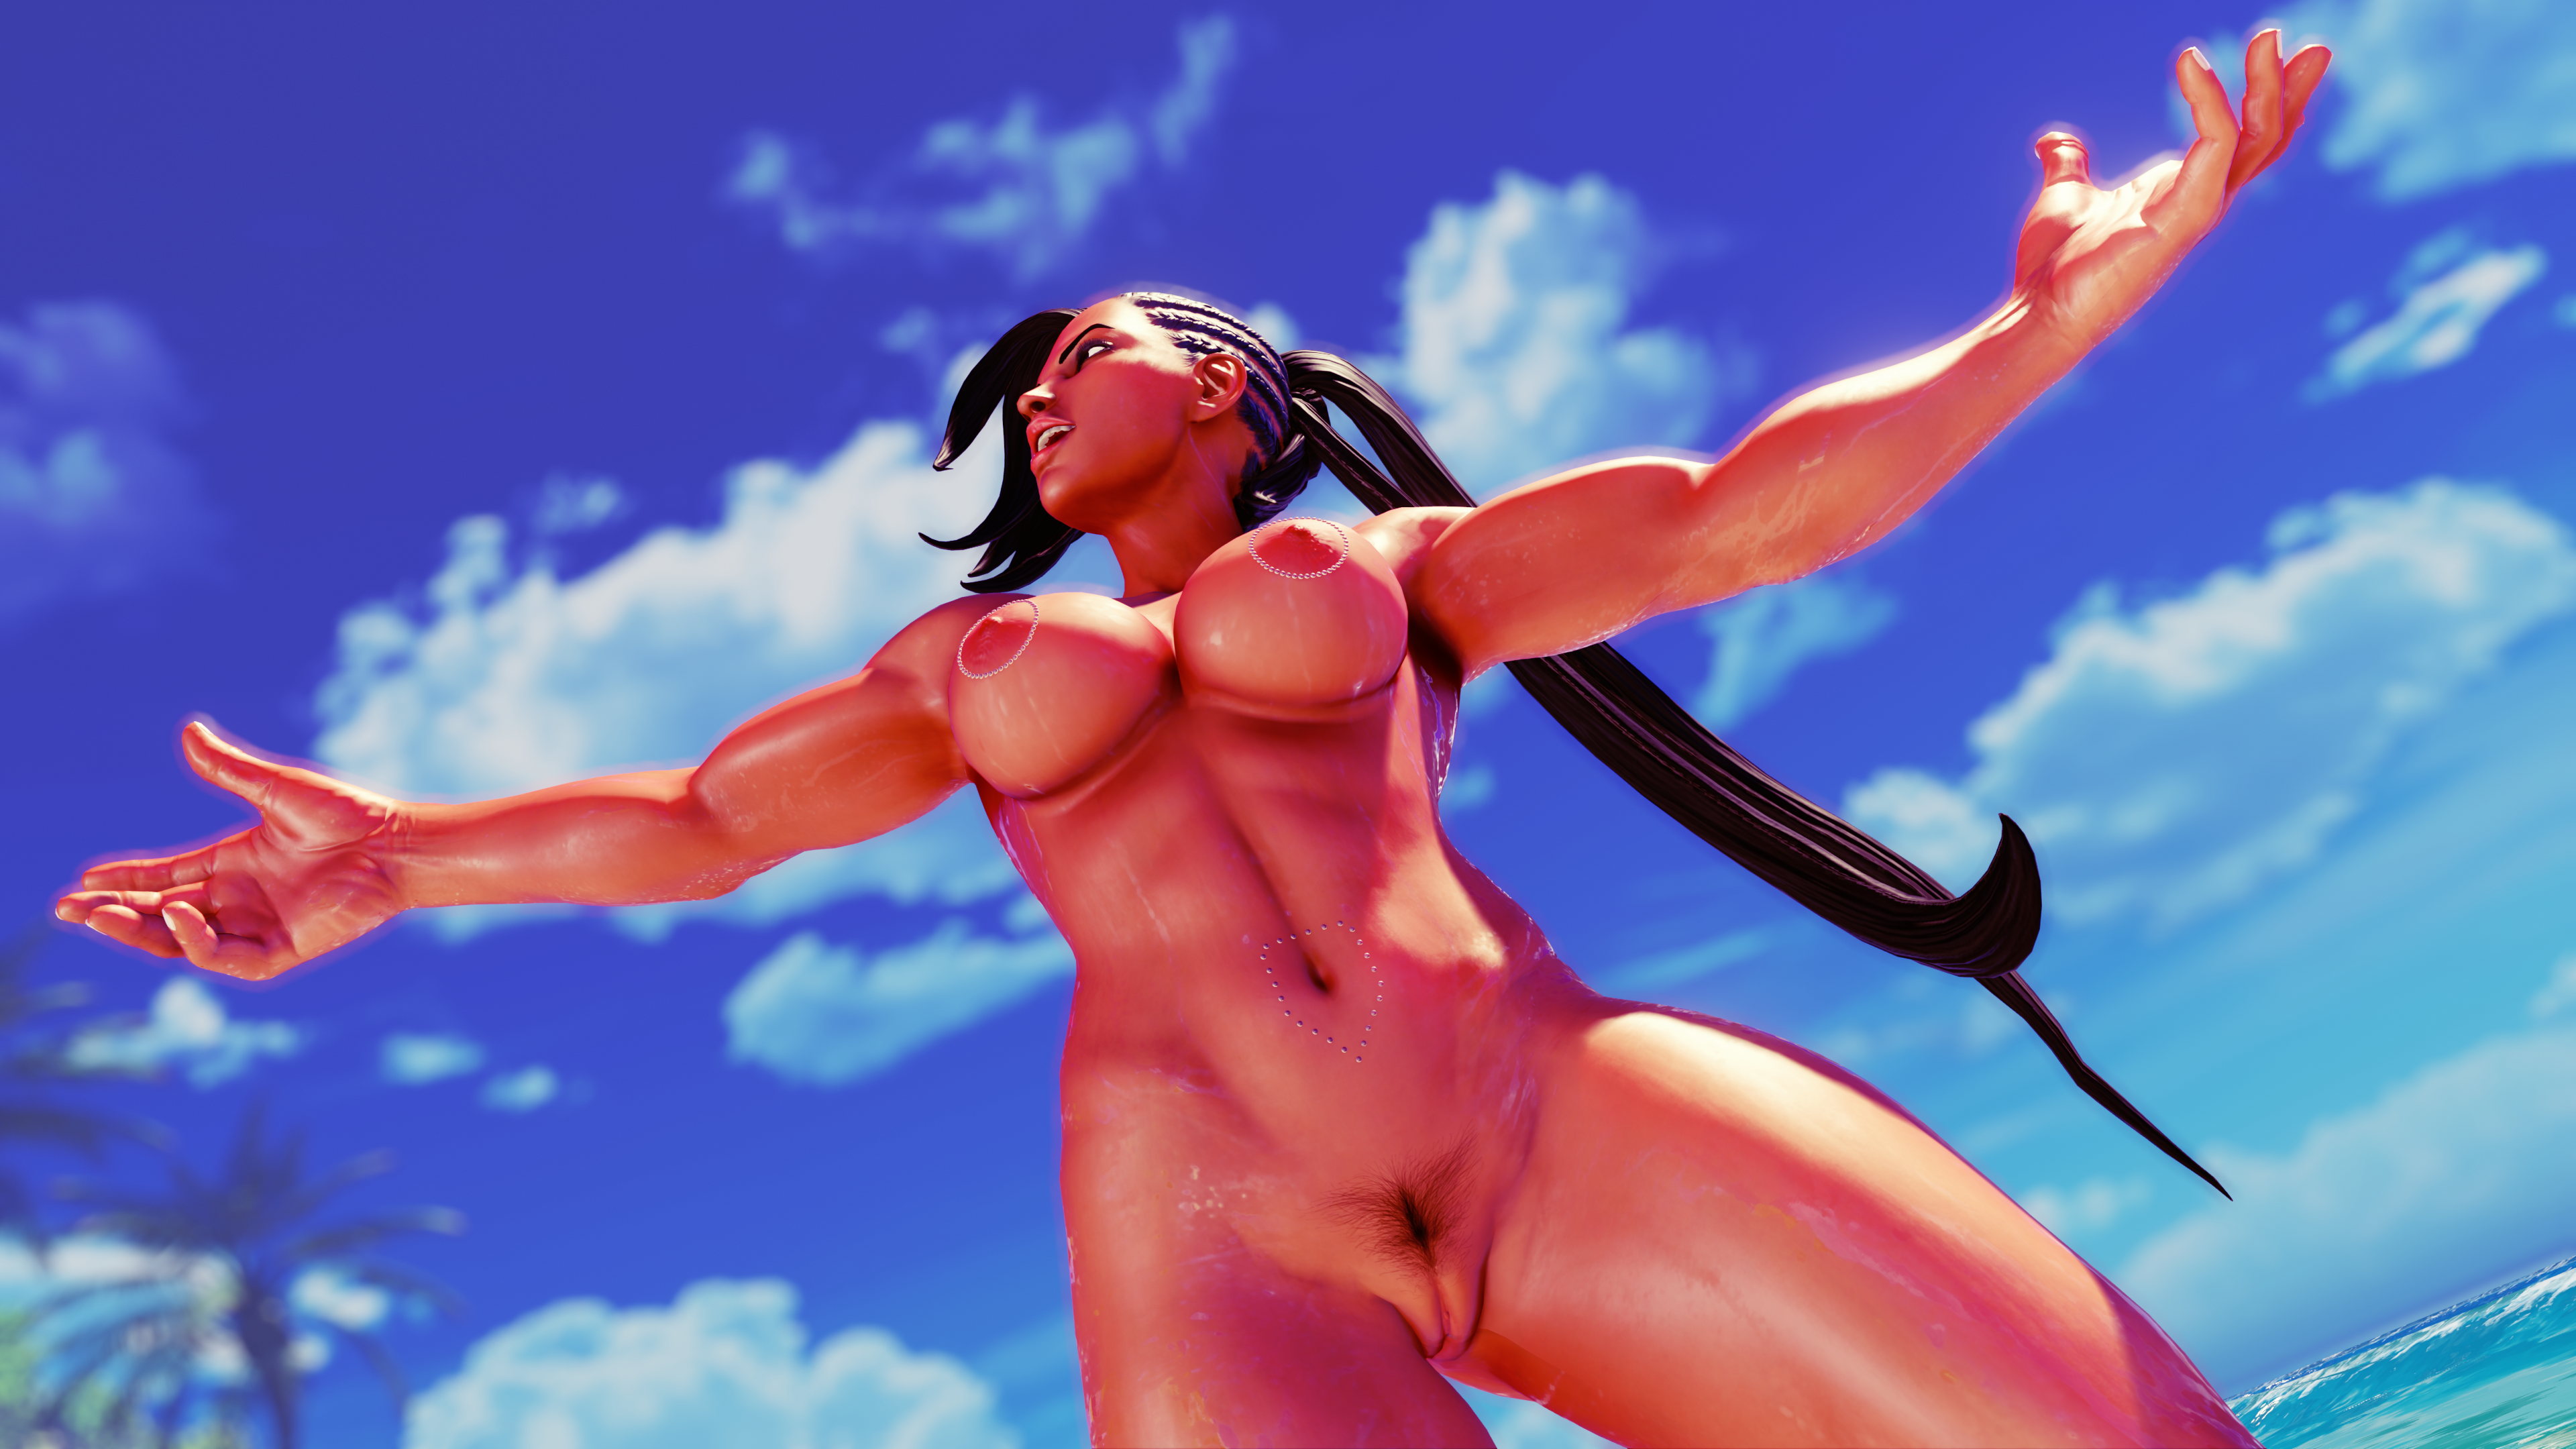 [Image: street_fighter_v_07_13_2017___02_47_12_5...bknqka.png]